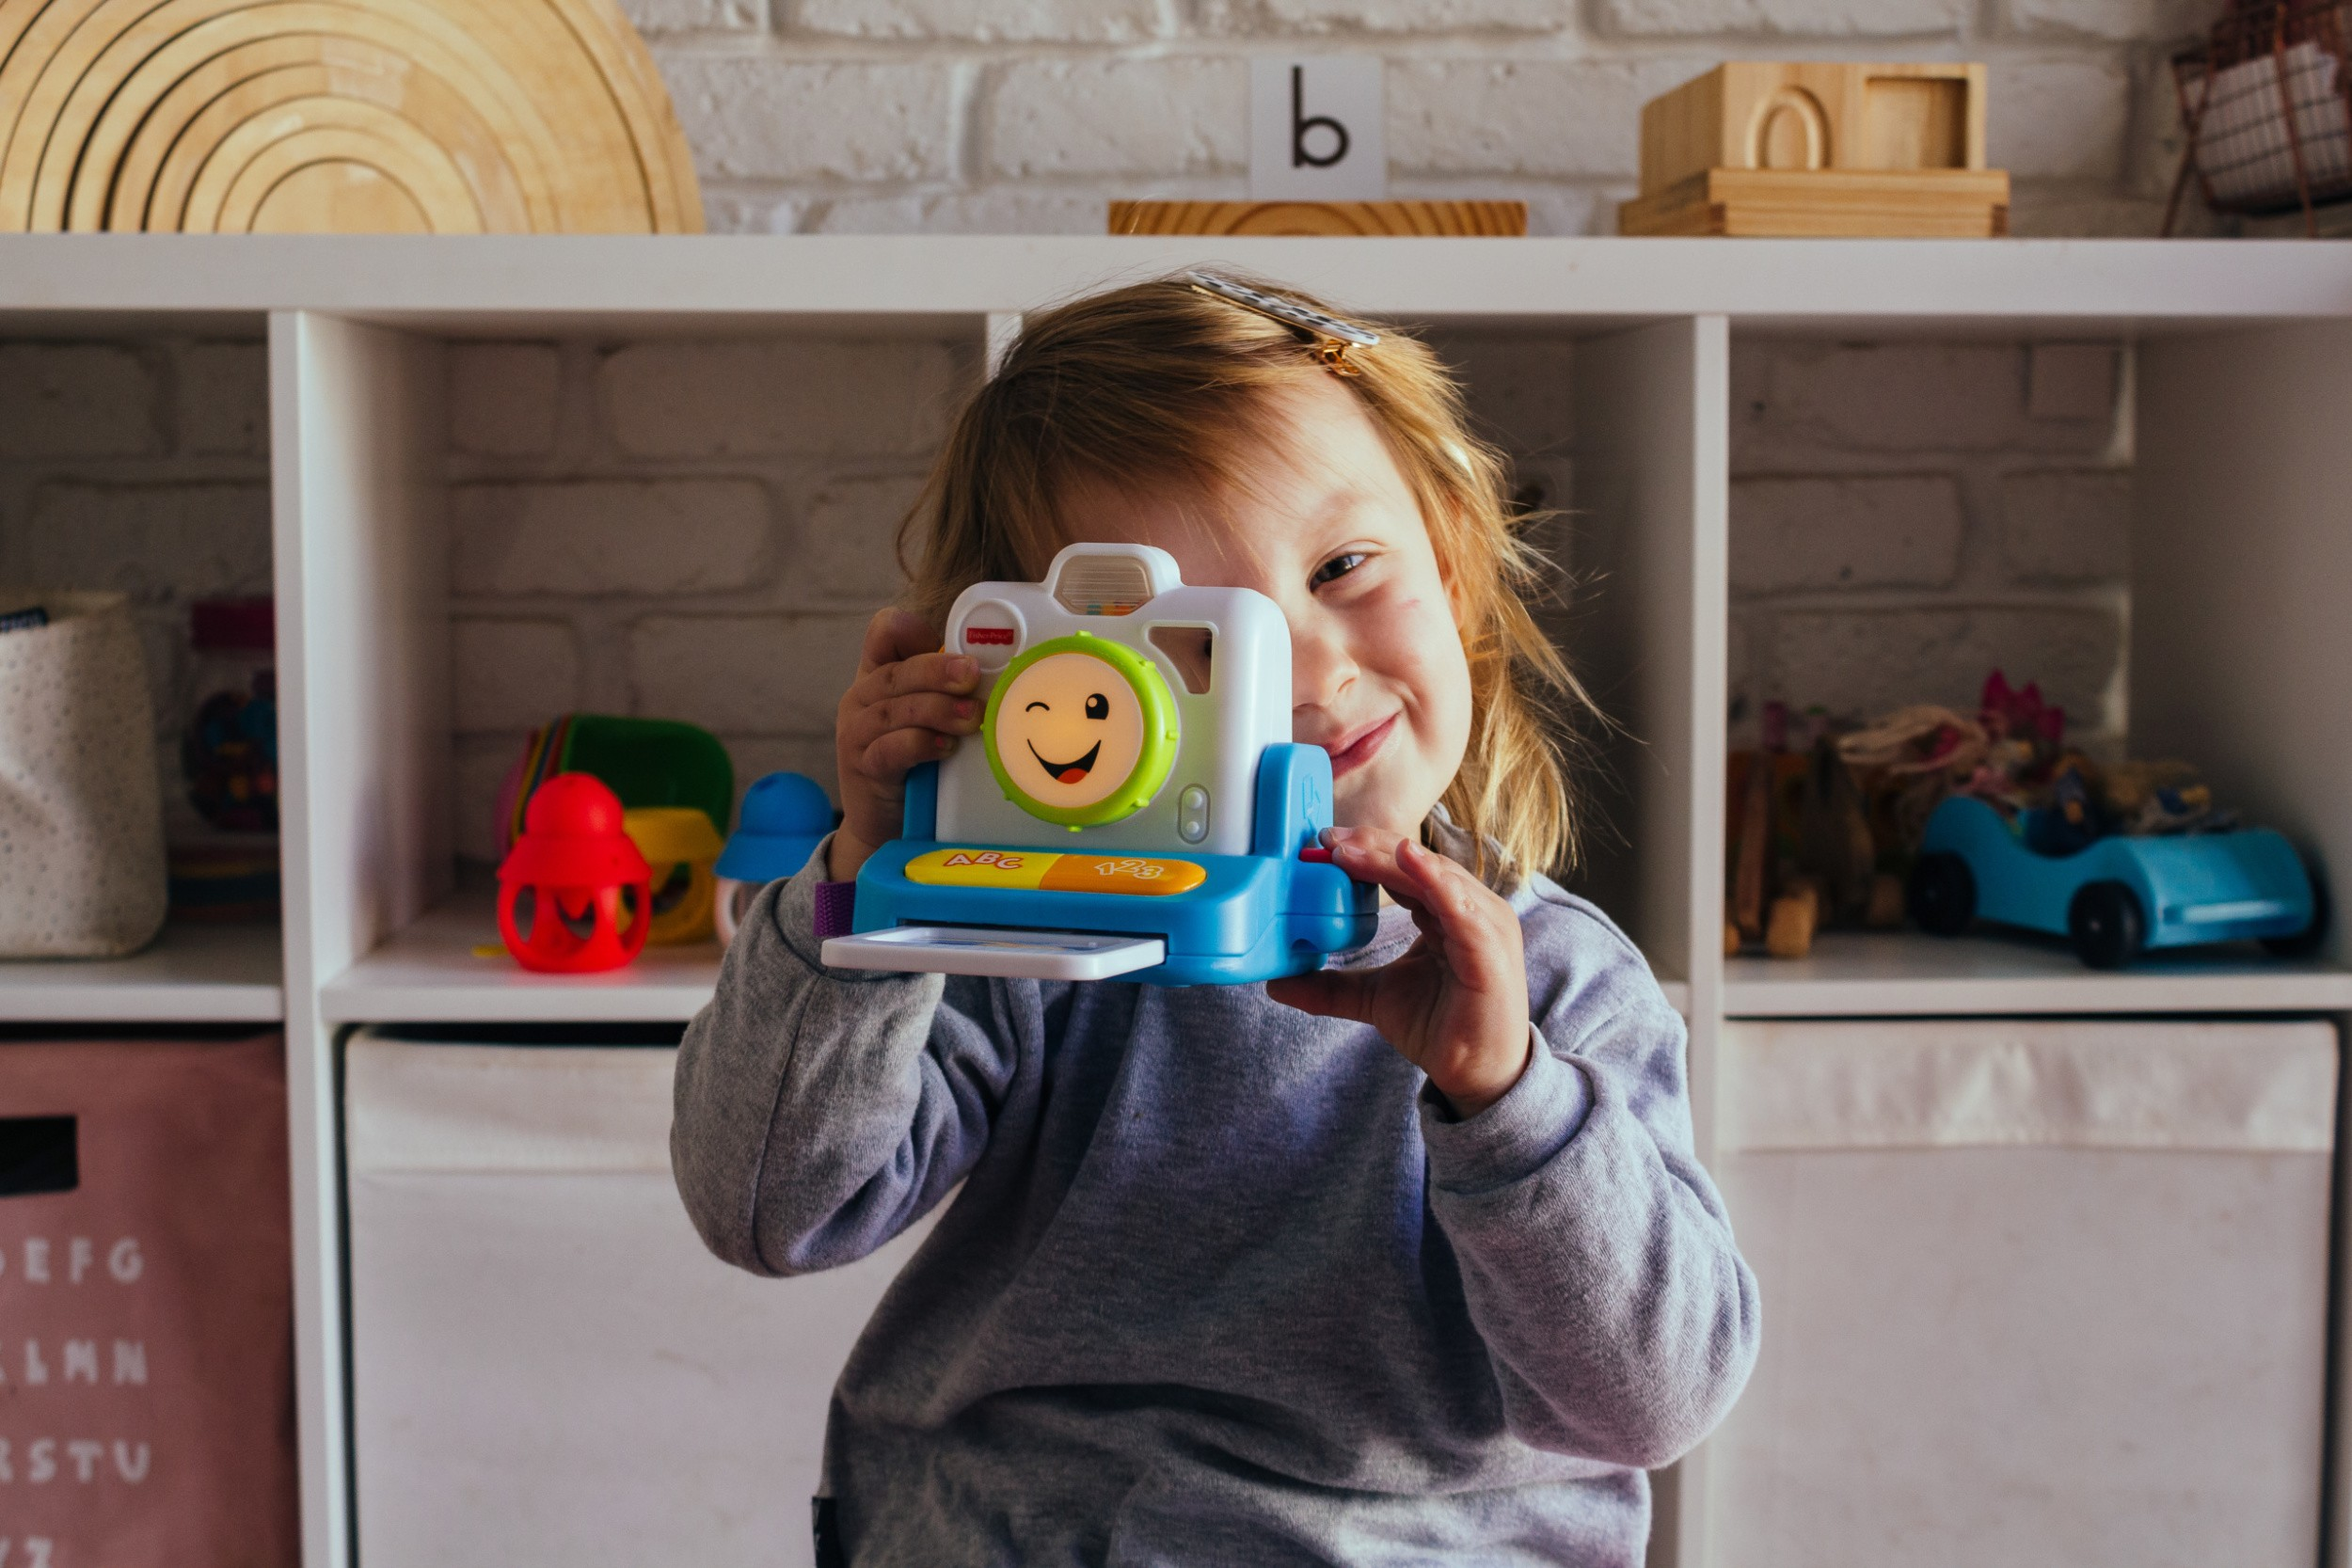 Toy Review: Ava's thoughts on the Fisher Price Instant Camera